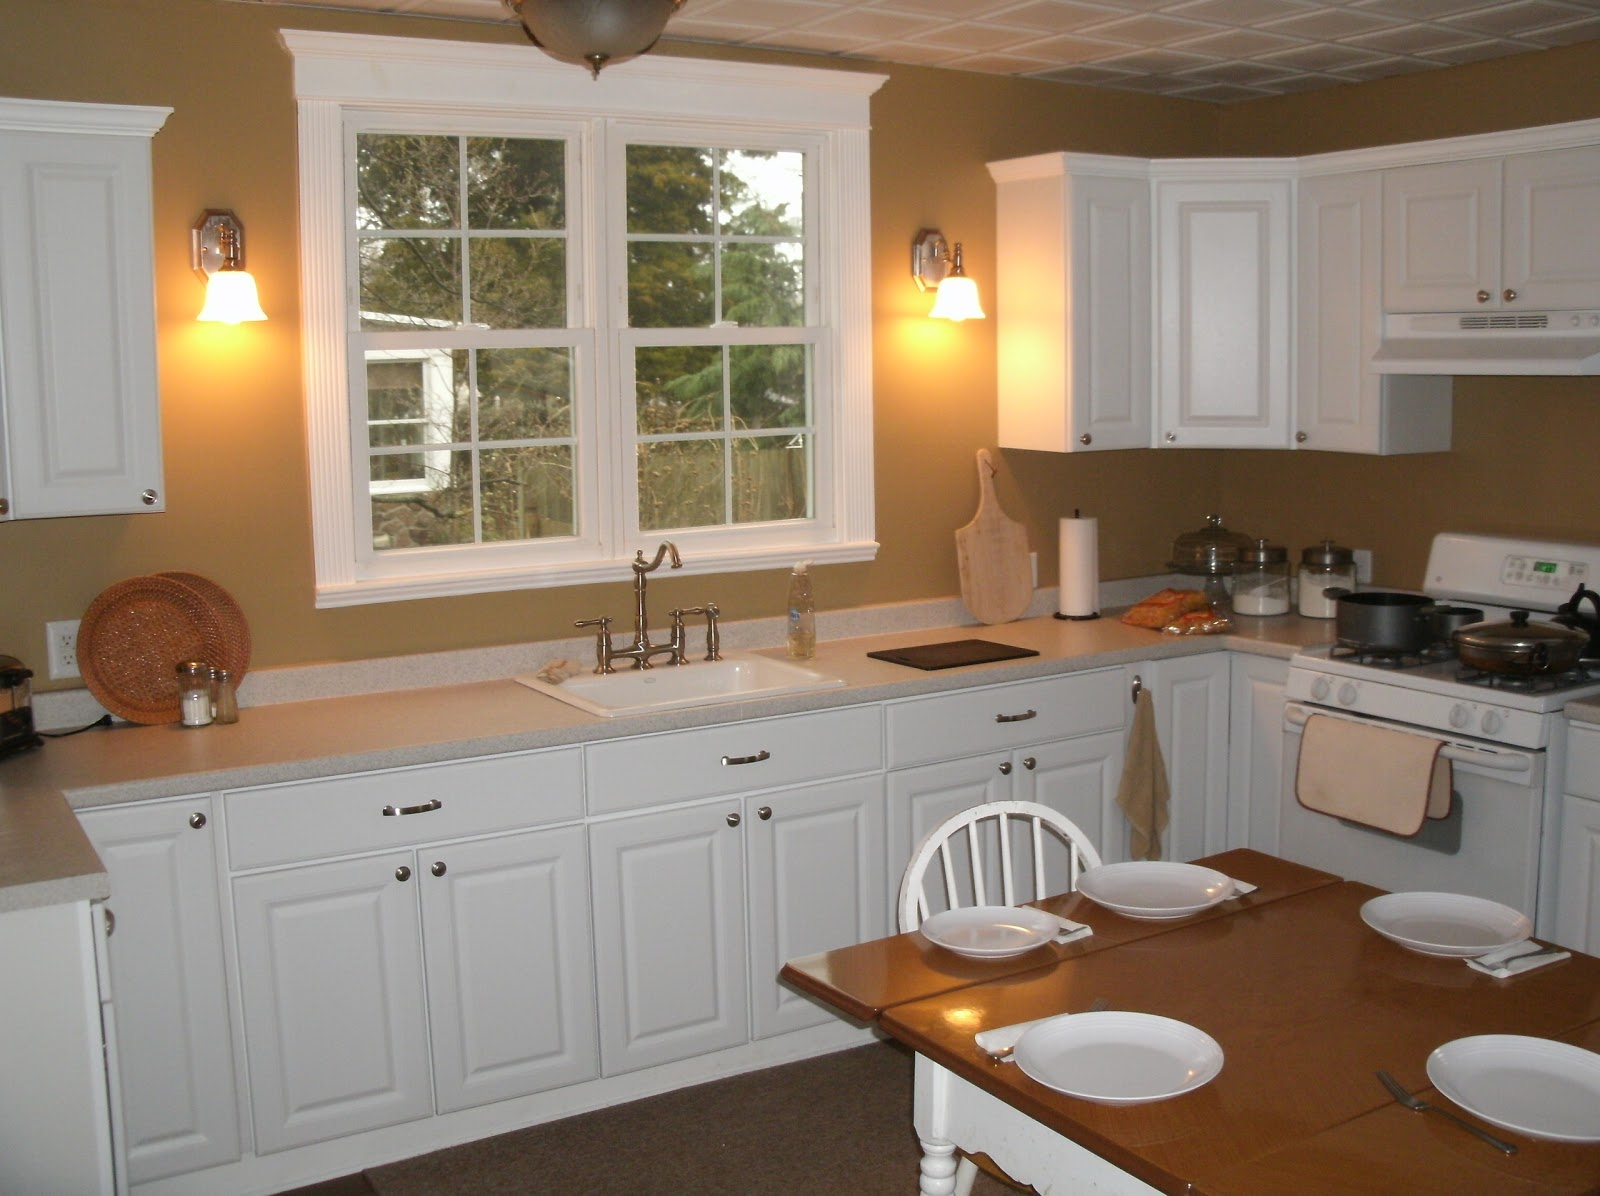 Home remodeling and improvements tips and how to 39 s for Small kitchen remodel designs